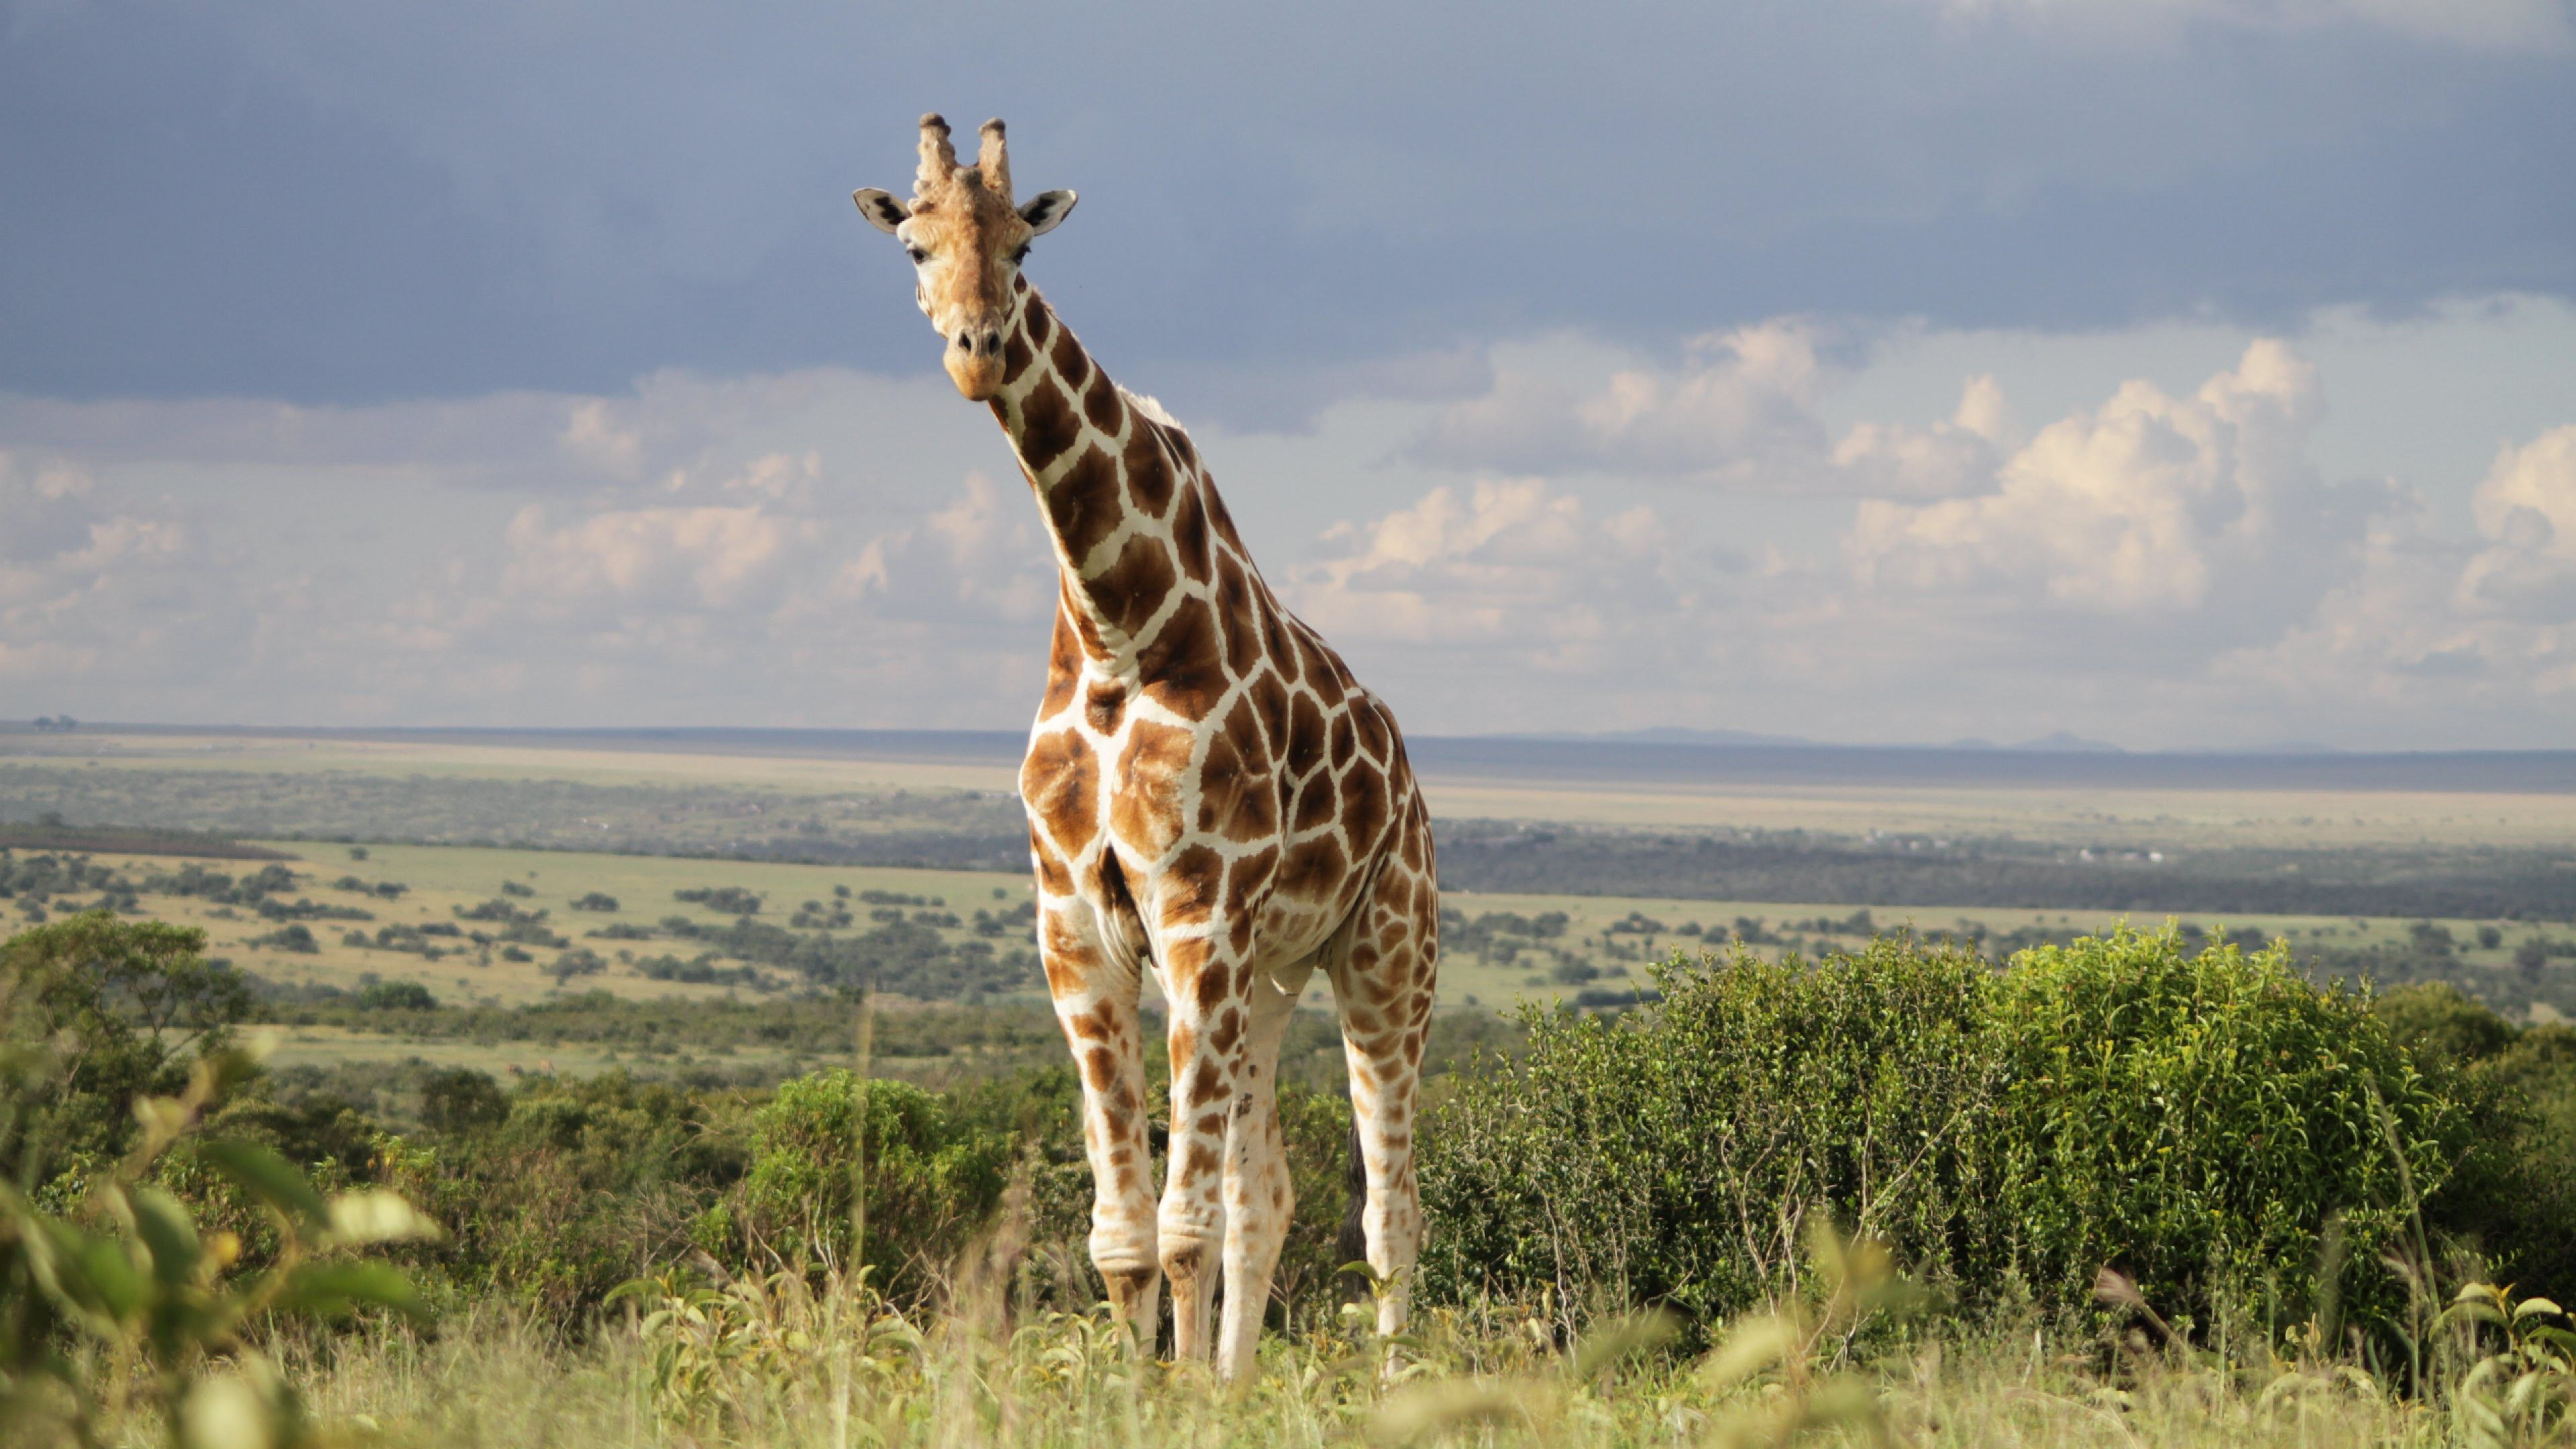 Giraffe Ultra Hd Animal Wallpapers 4k